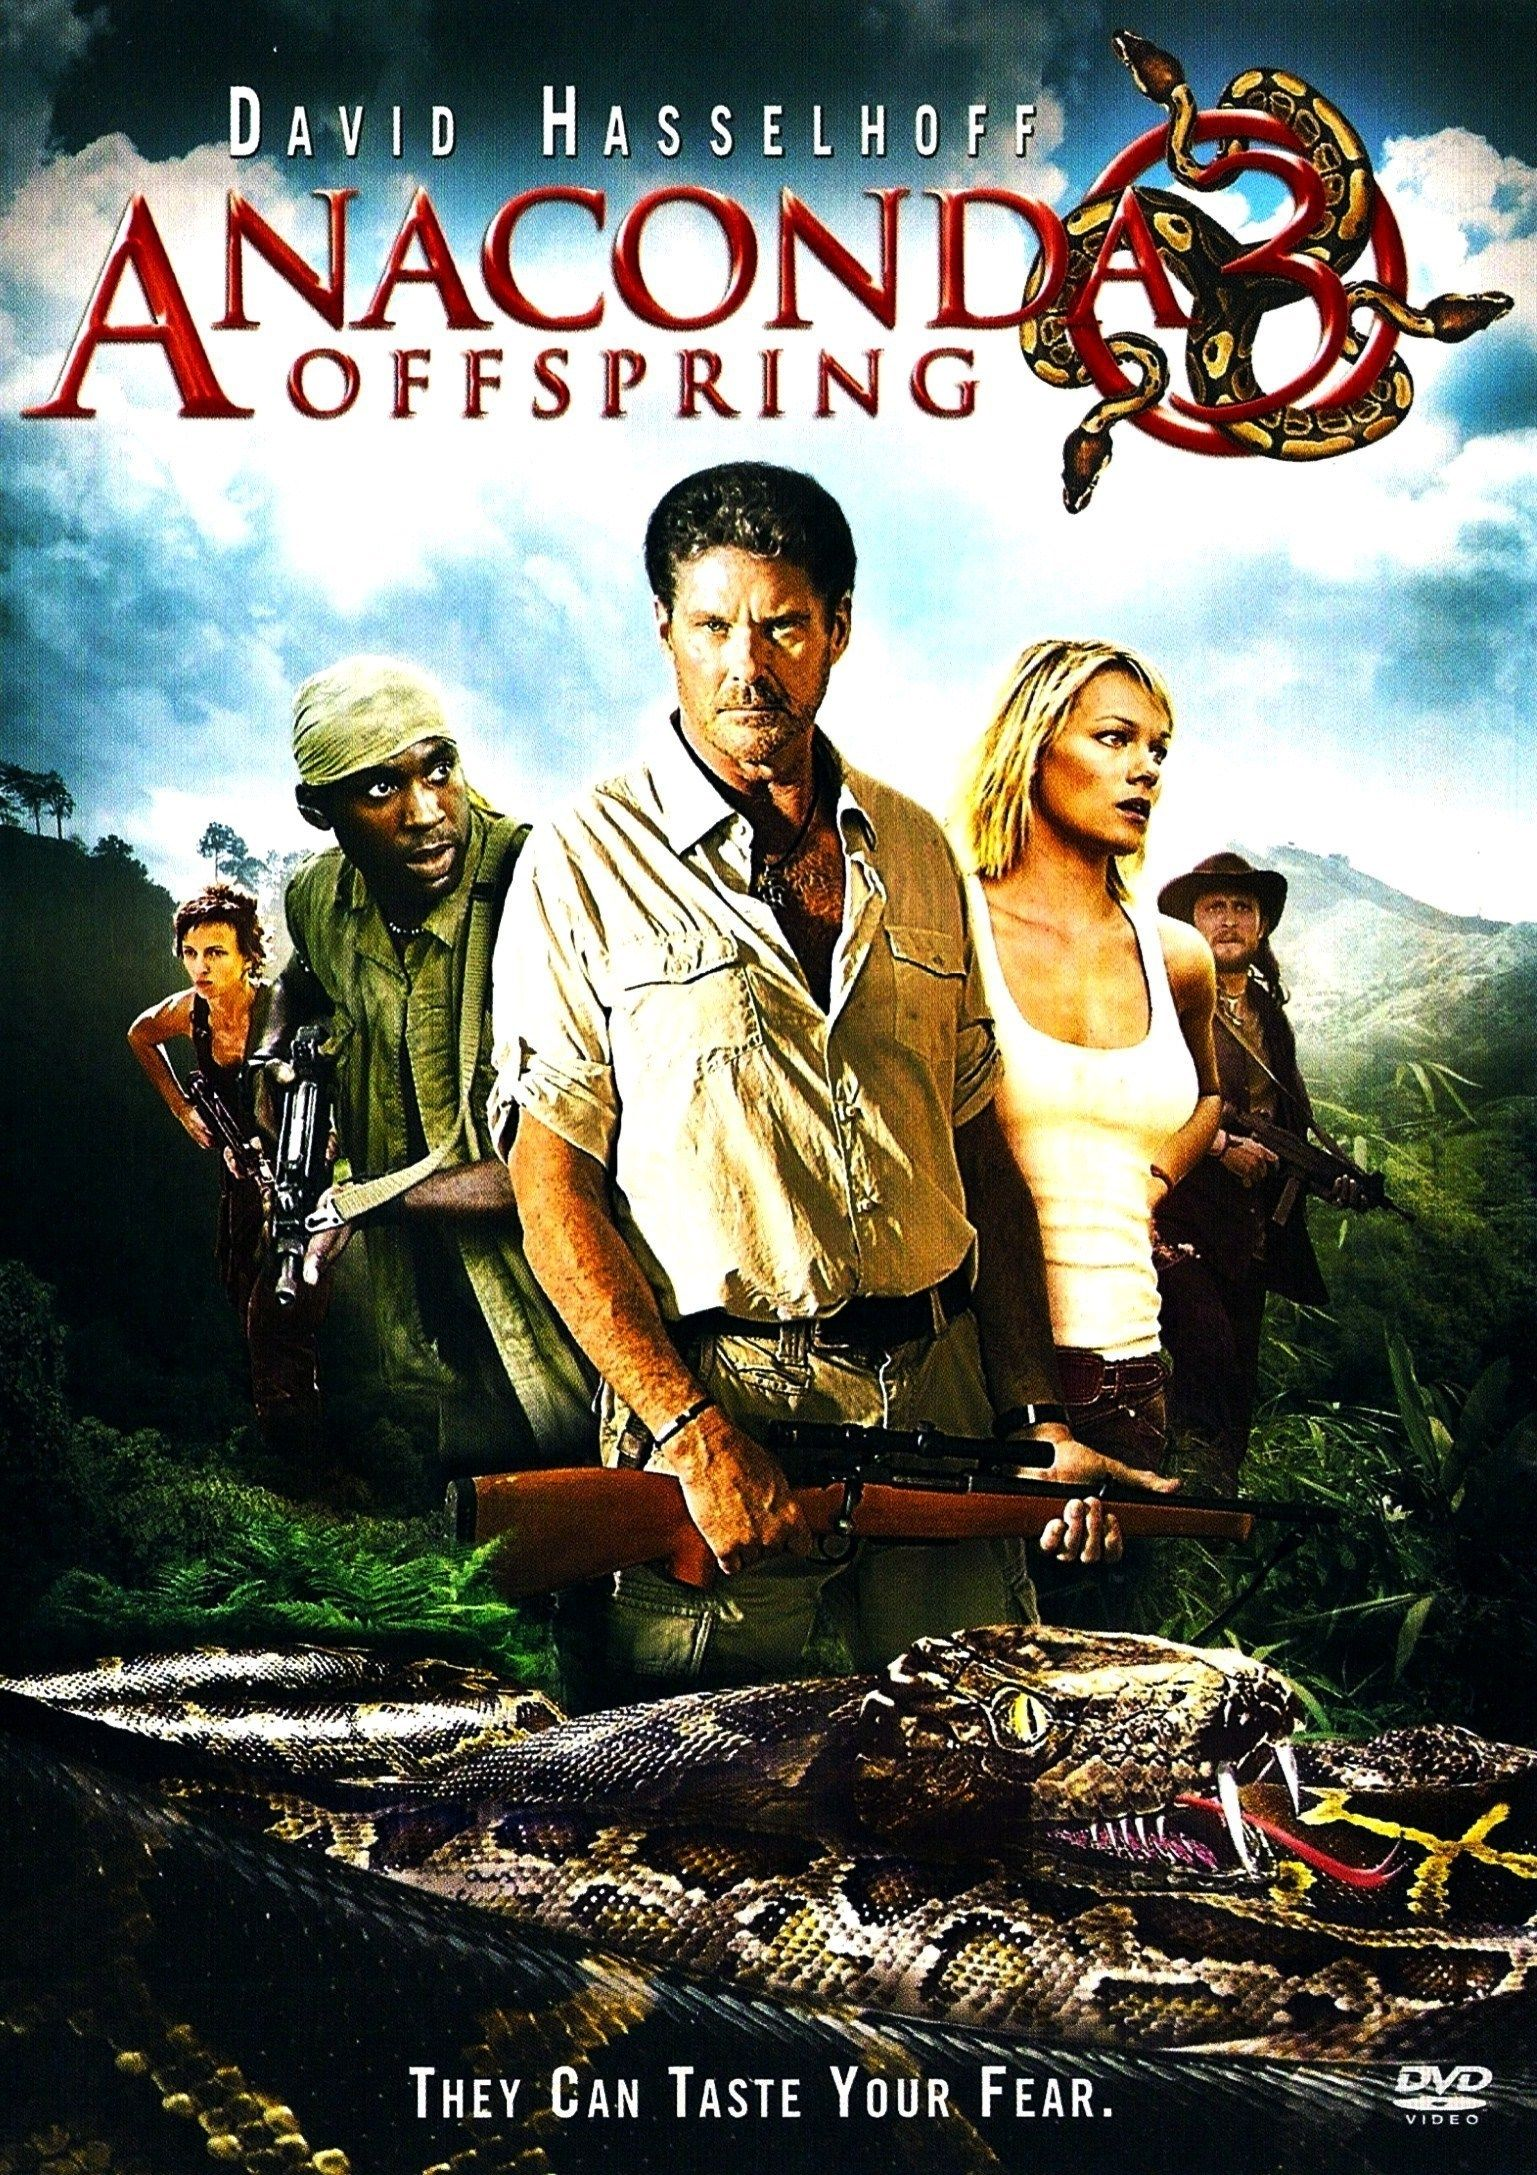 Anaconda 3 Offspring 2008 Movie Review With Images Anaconda